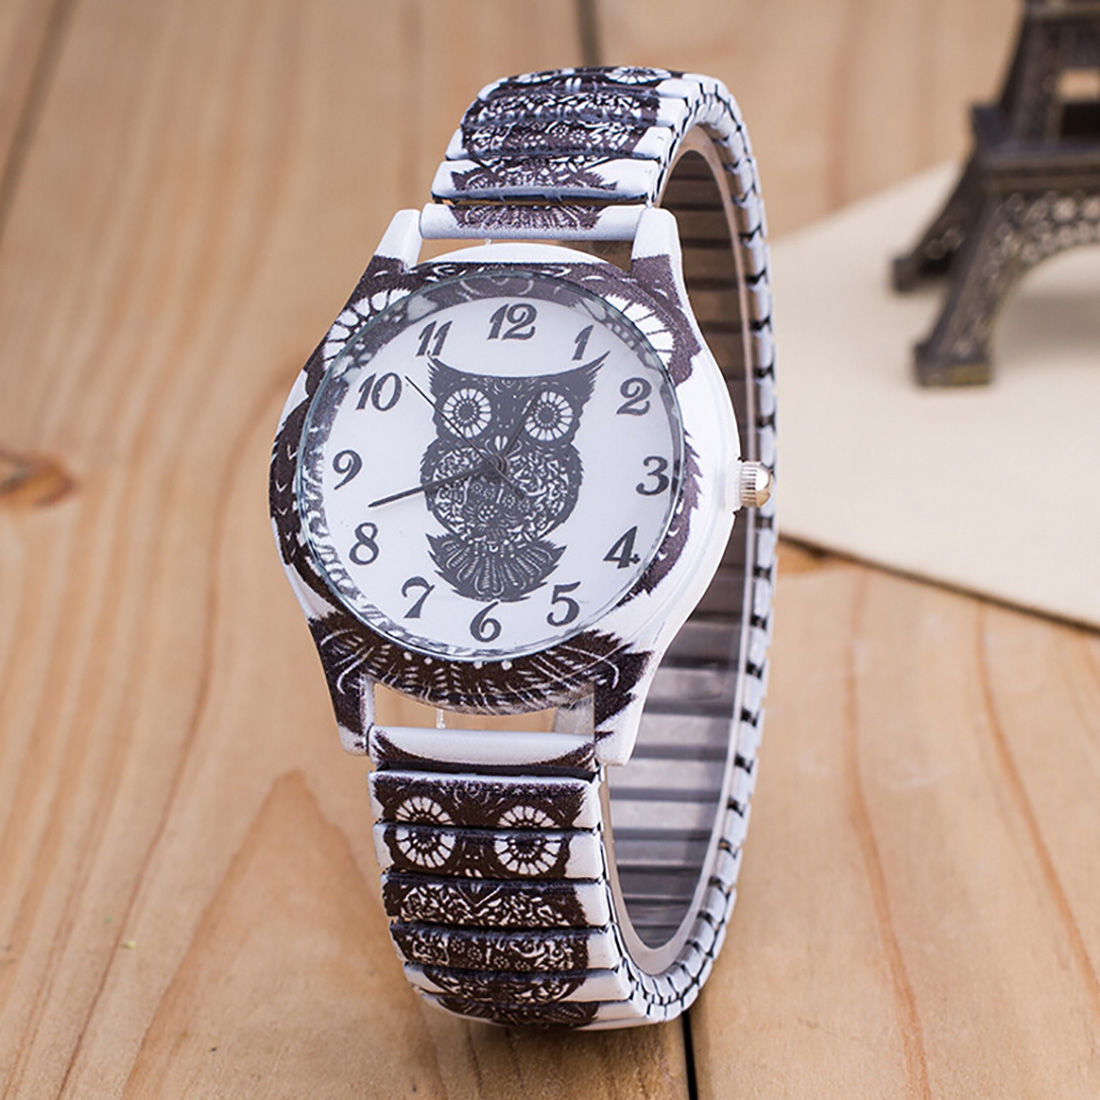 Hot Sale Elastic Band Watches Stainless Steel Wristwatches Print Skull Peacock Owl Pattern Fashion Casual Watch Women Watch